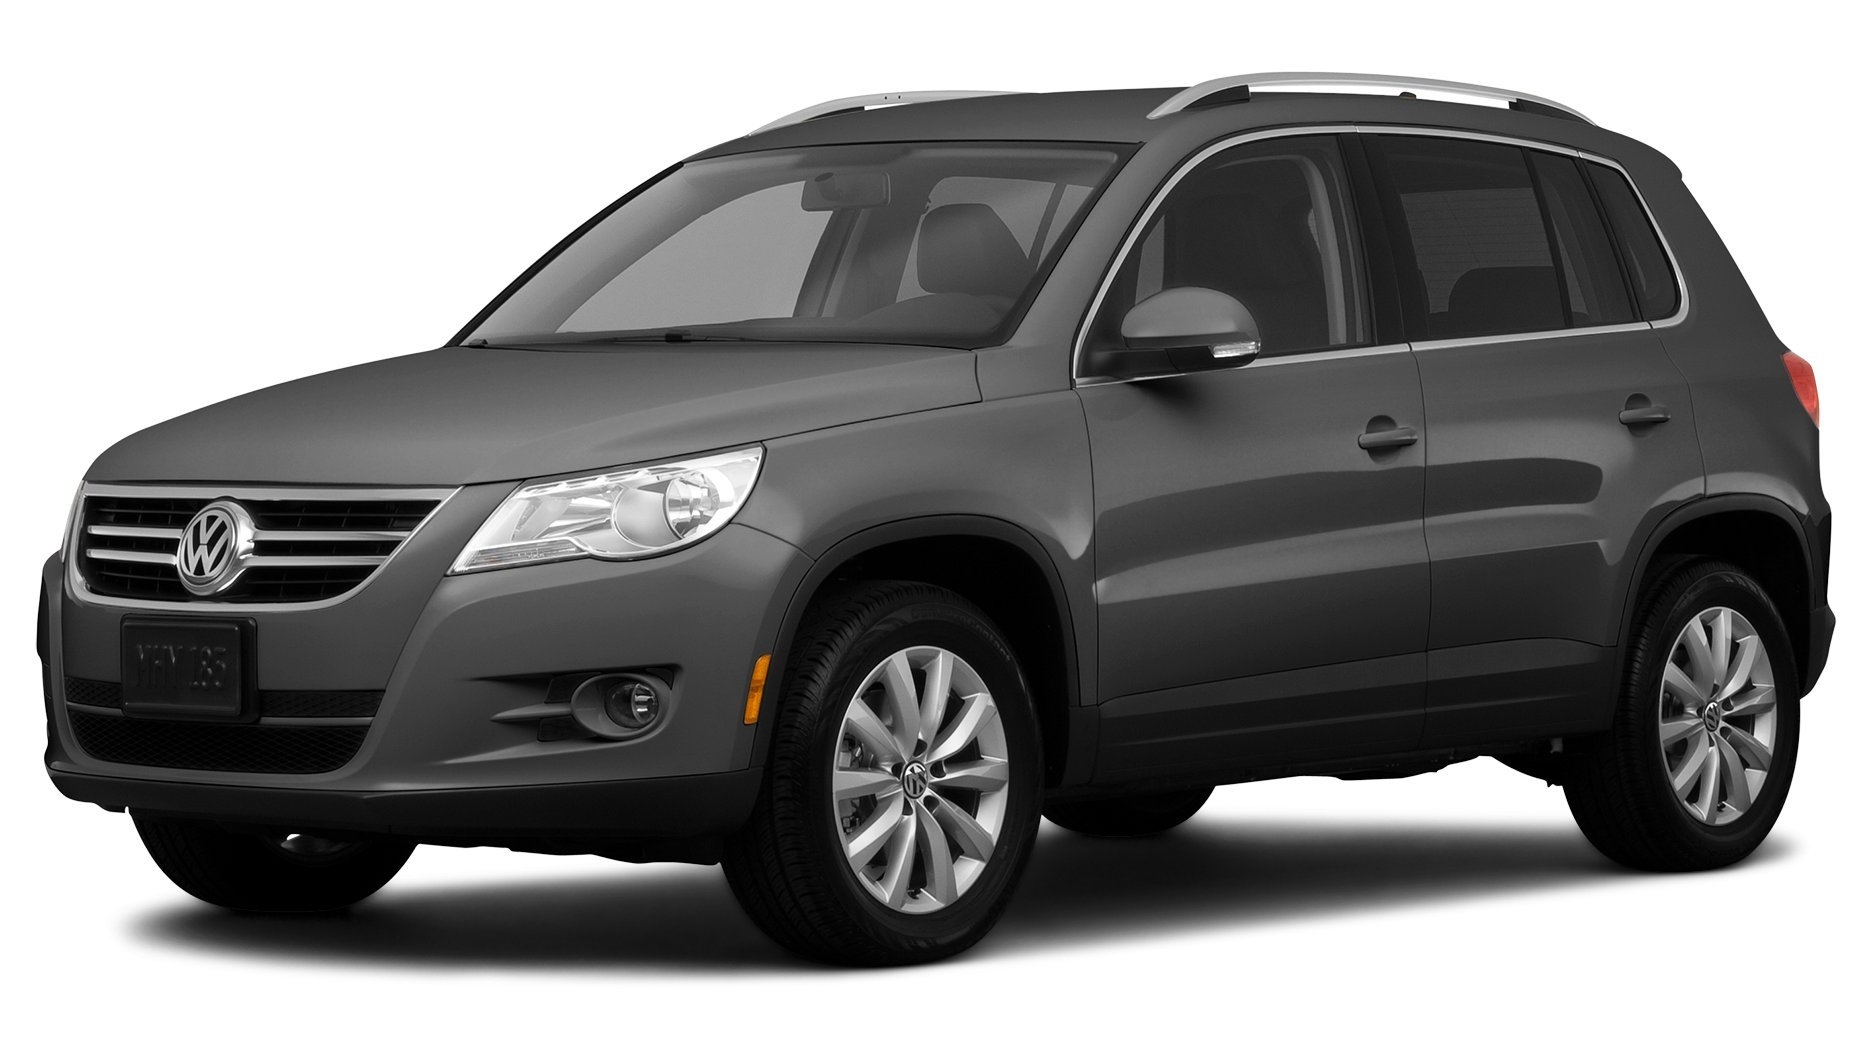 2011 Volkswagen Tiguan S, 2-Wheel Drive 4-Door Automatic Transmission ...